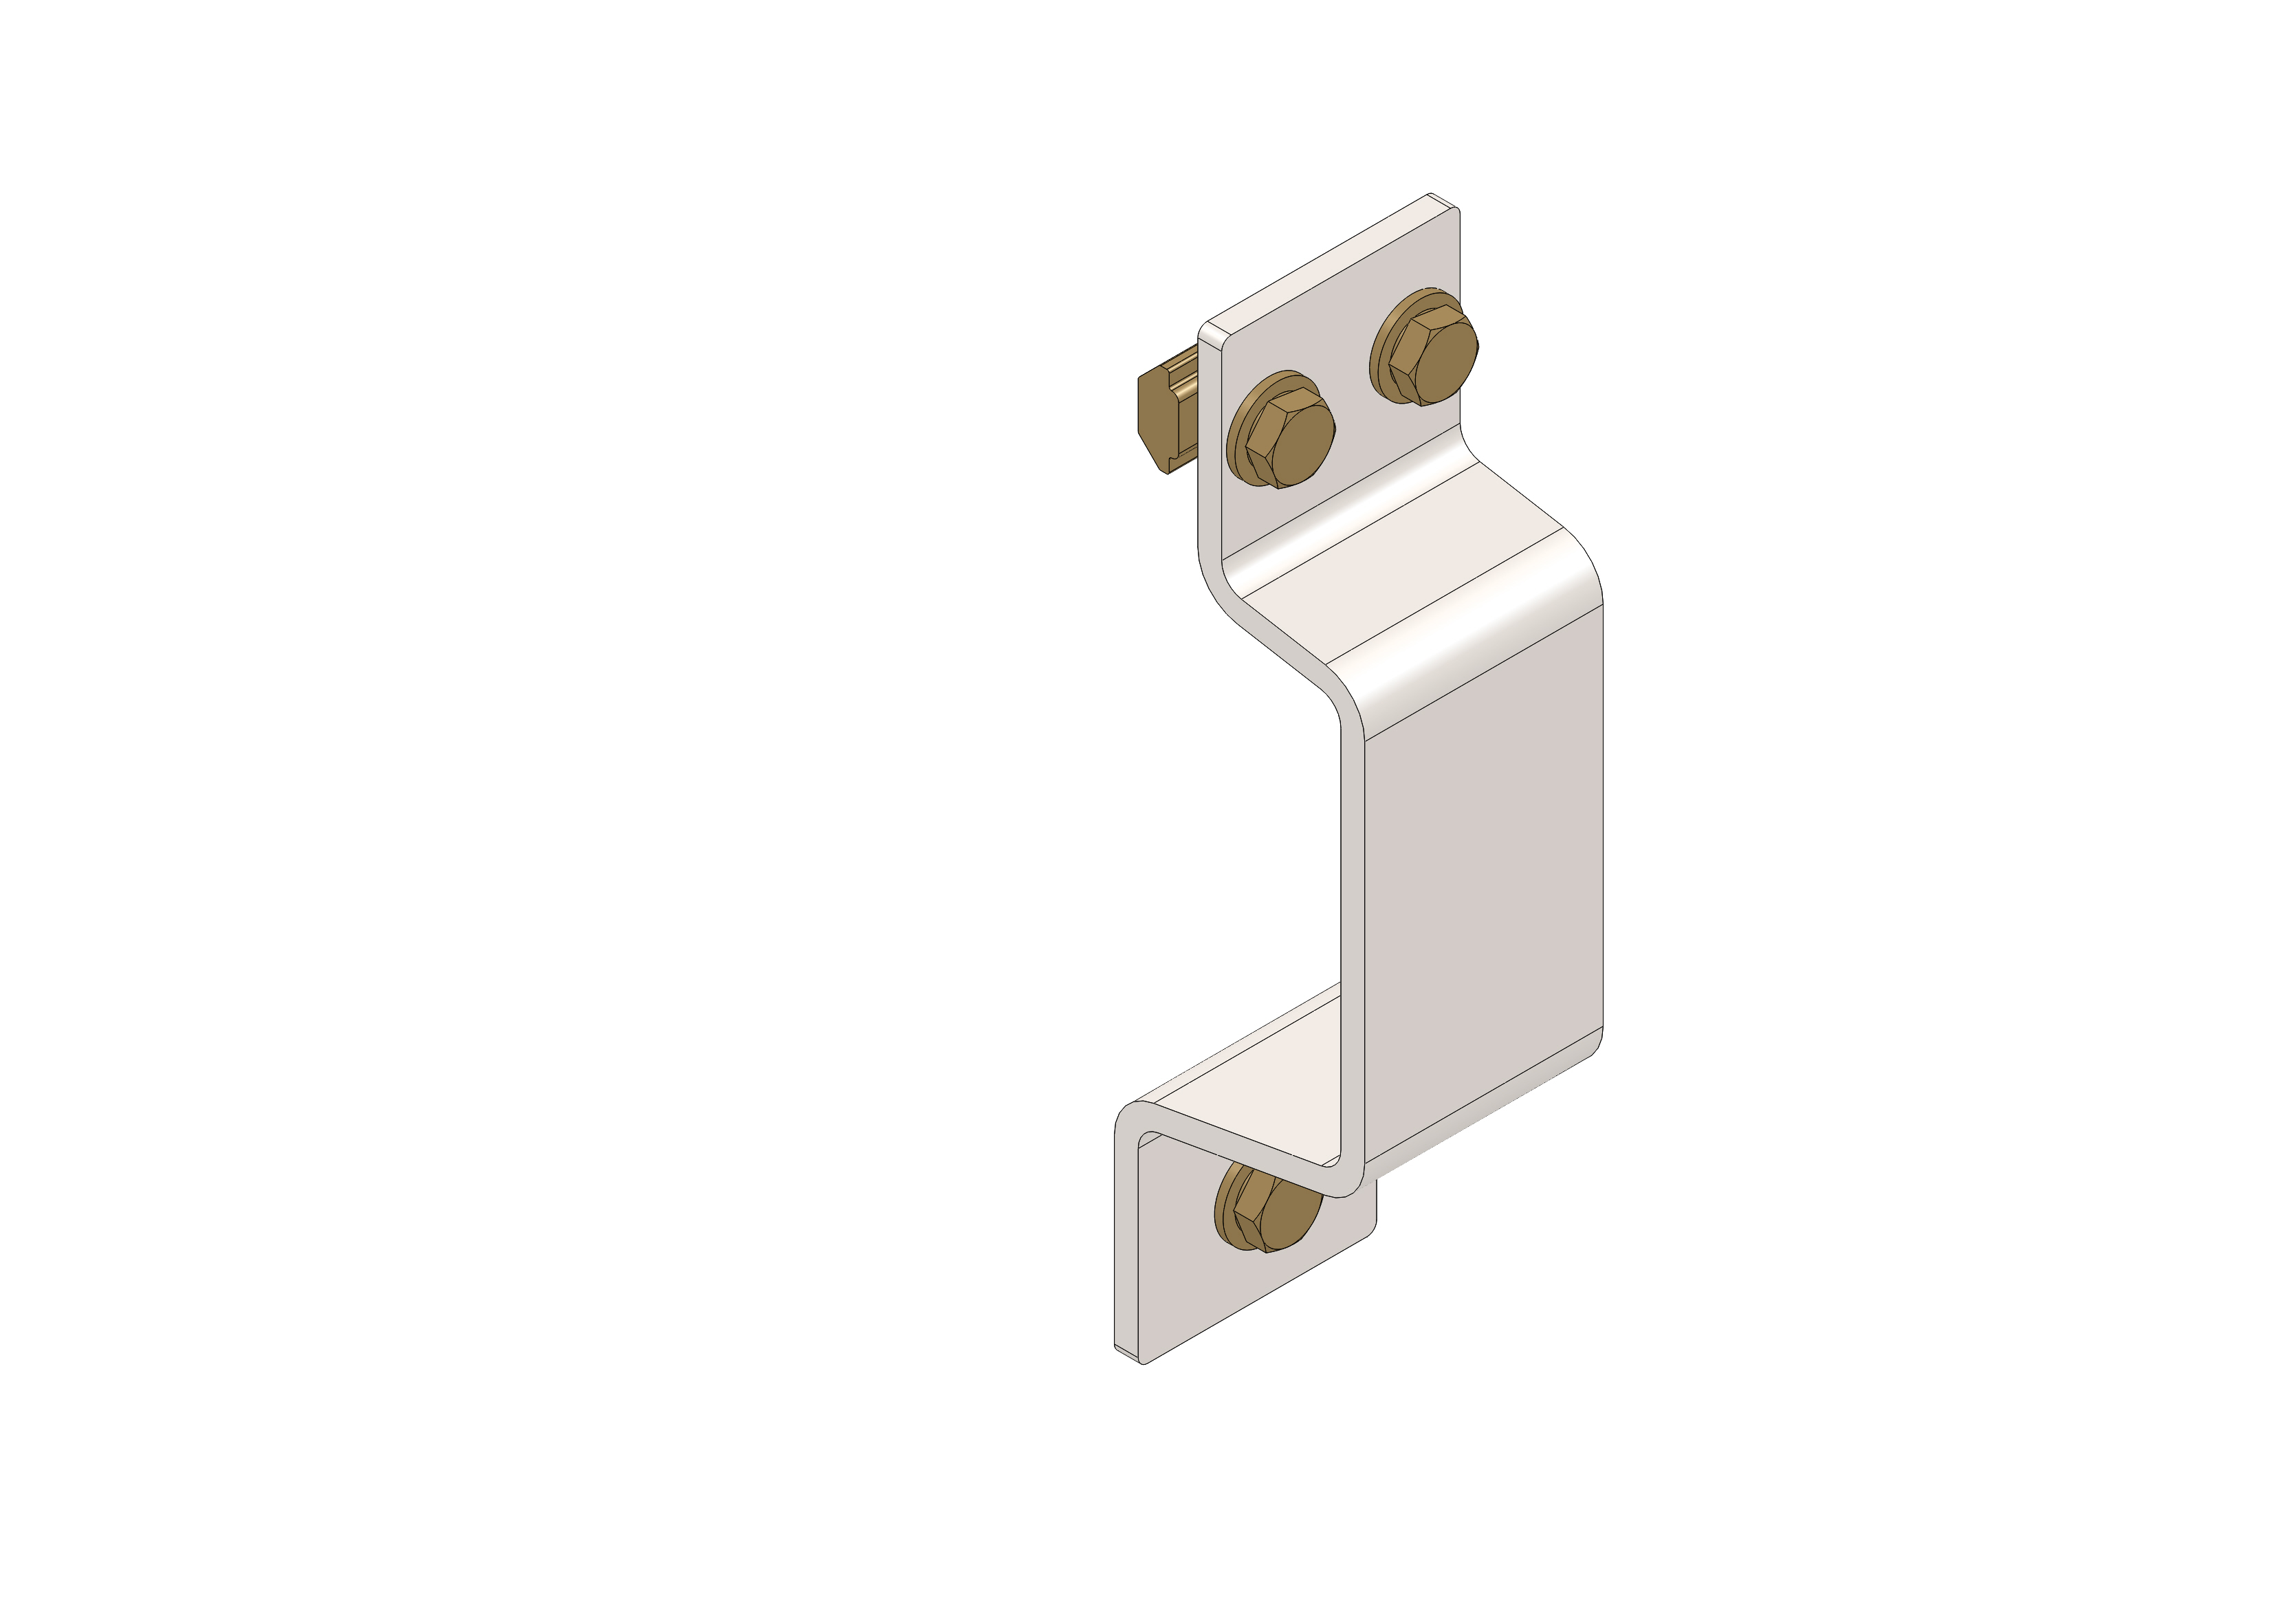 Support bracket for chassis  P50-L kit - 85